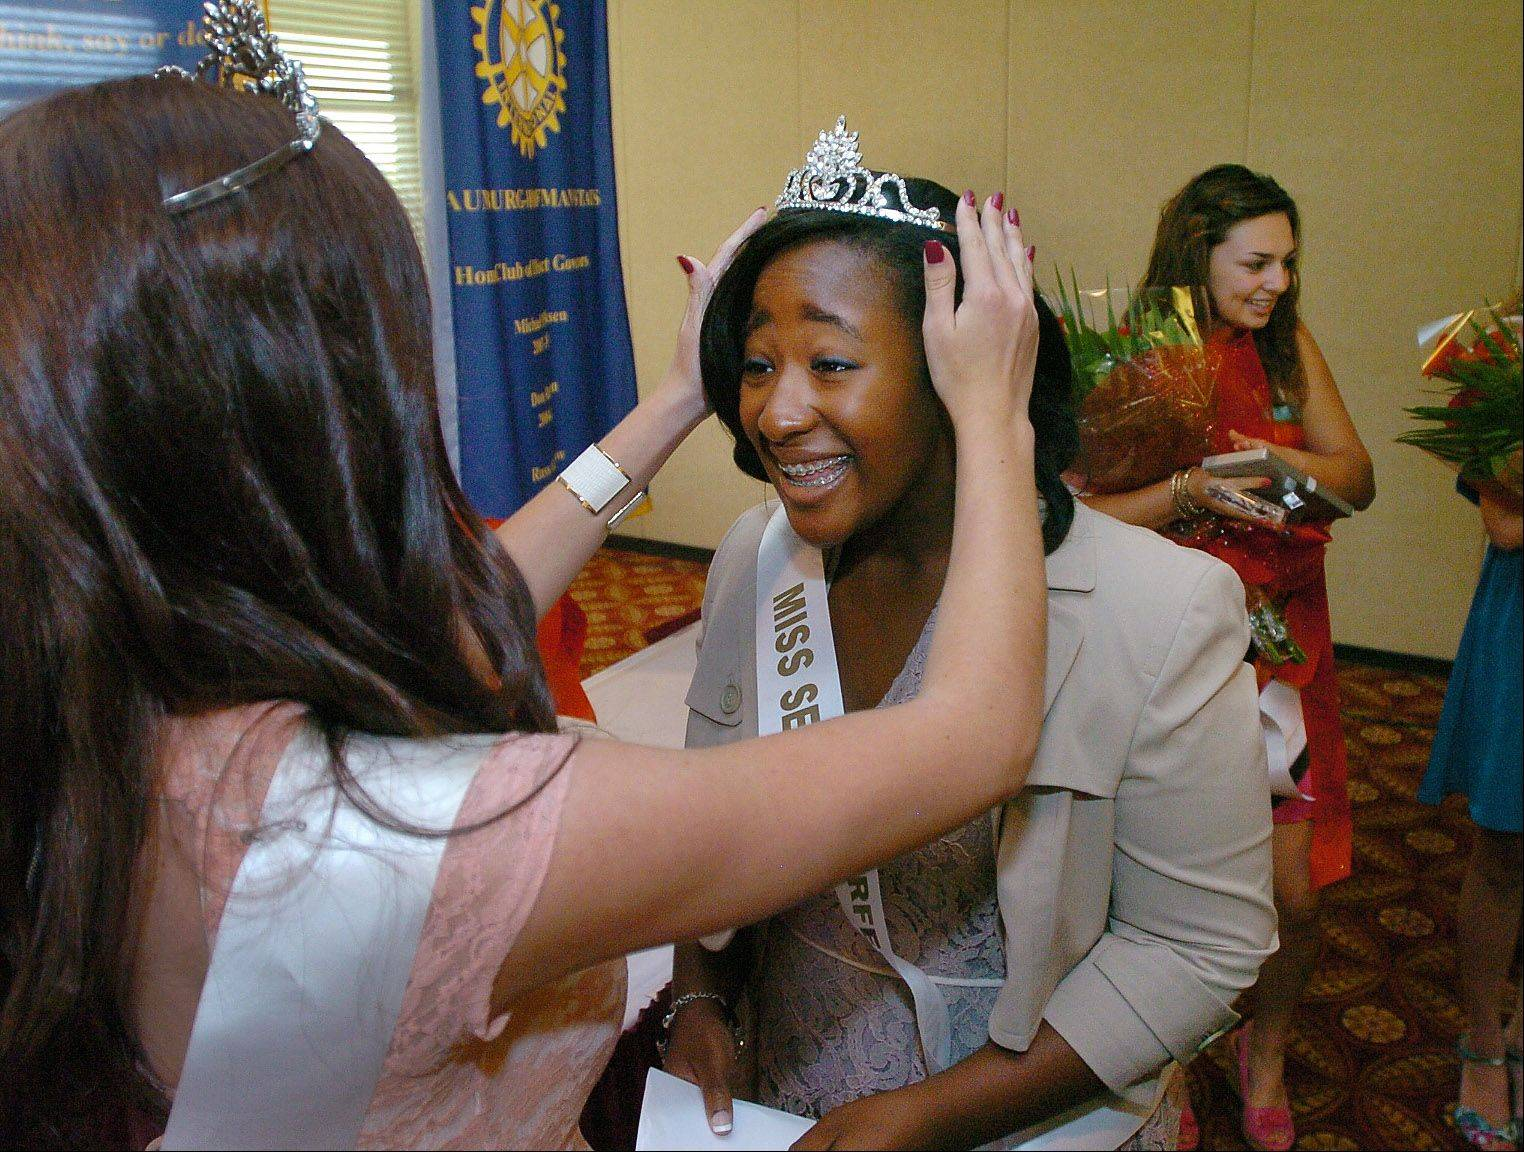 Schaumburg's Miss Septemberfest 2011 Ali Roller, left, crowns Mariah Ghant of Conant High School as Miss Septemberfest 2012 at Bridges of Poplar Creek Country Club in Hoffman Estates Friday.